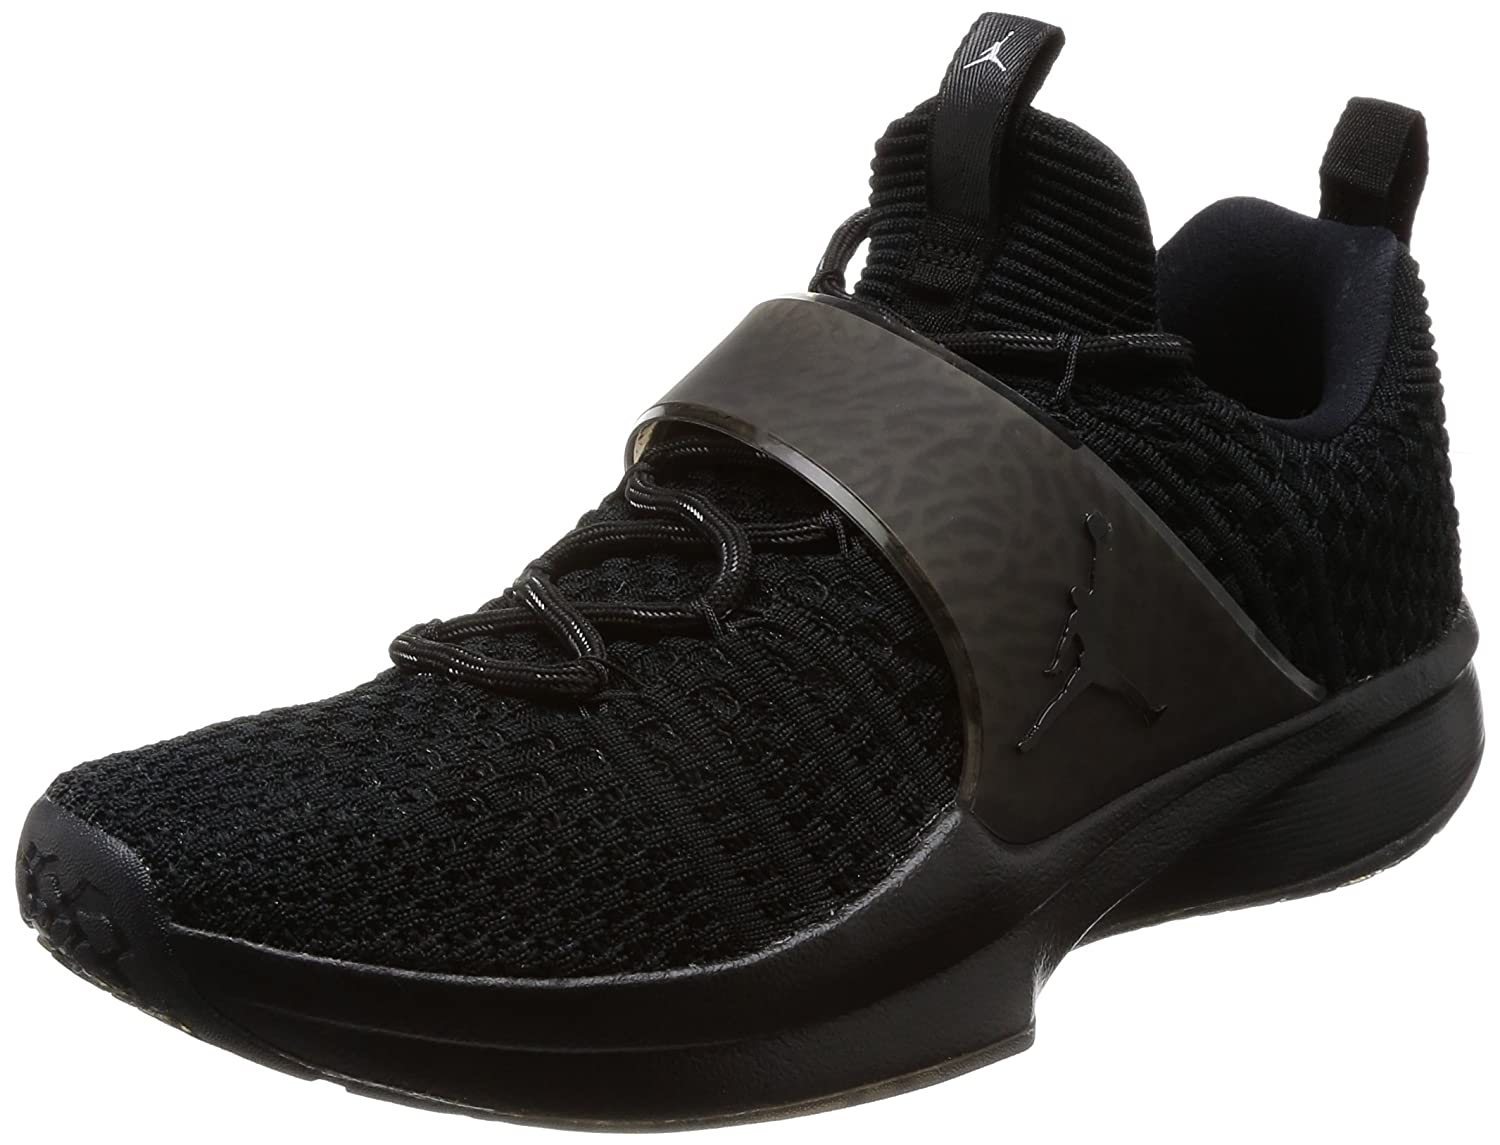 Jordan Trainer 2 Flyknit Men's Training Shoes B009GPI0FM 7 M US|Black/Black-metallic Silver